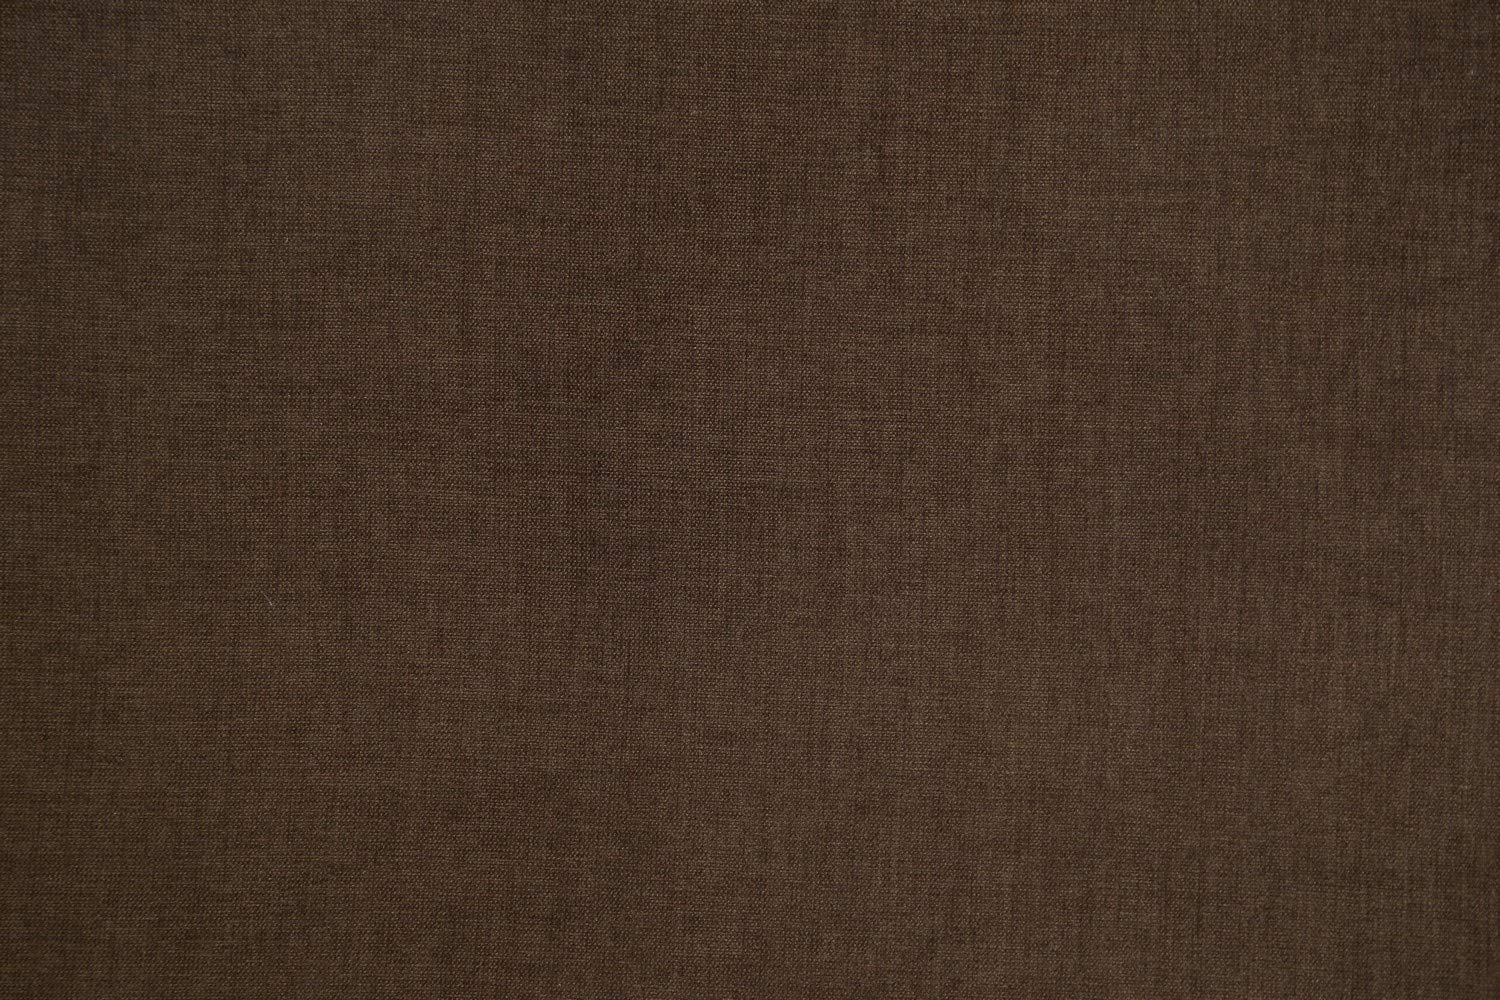 Quality craft material 27 Upholstery fabric Brown tone material